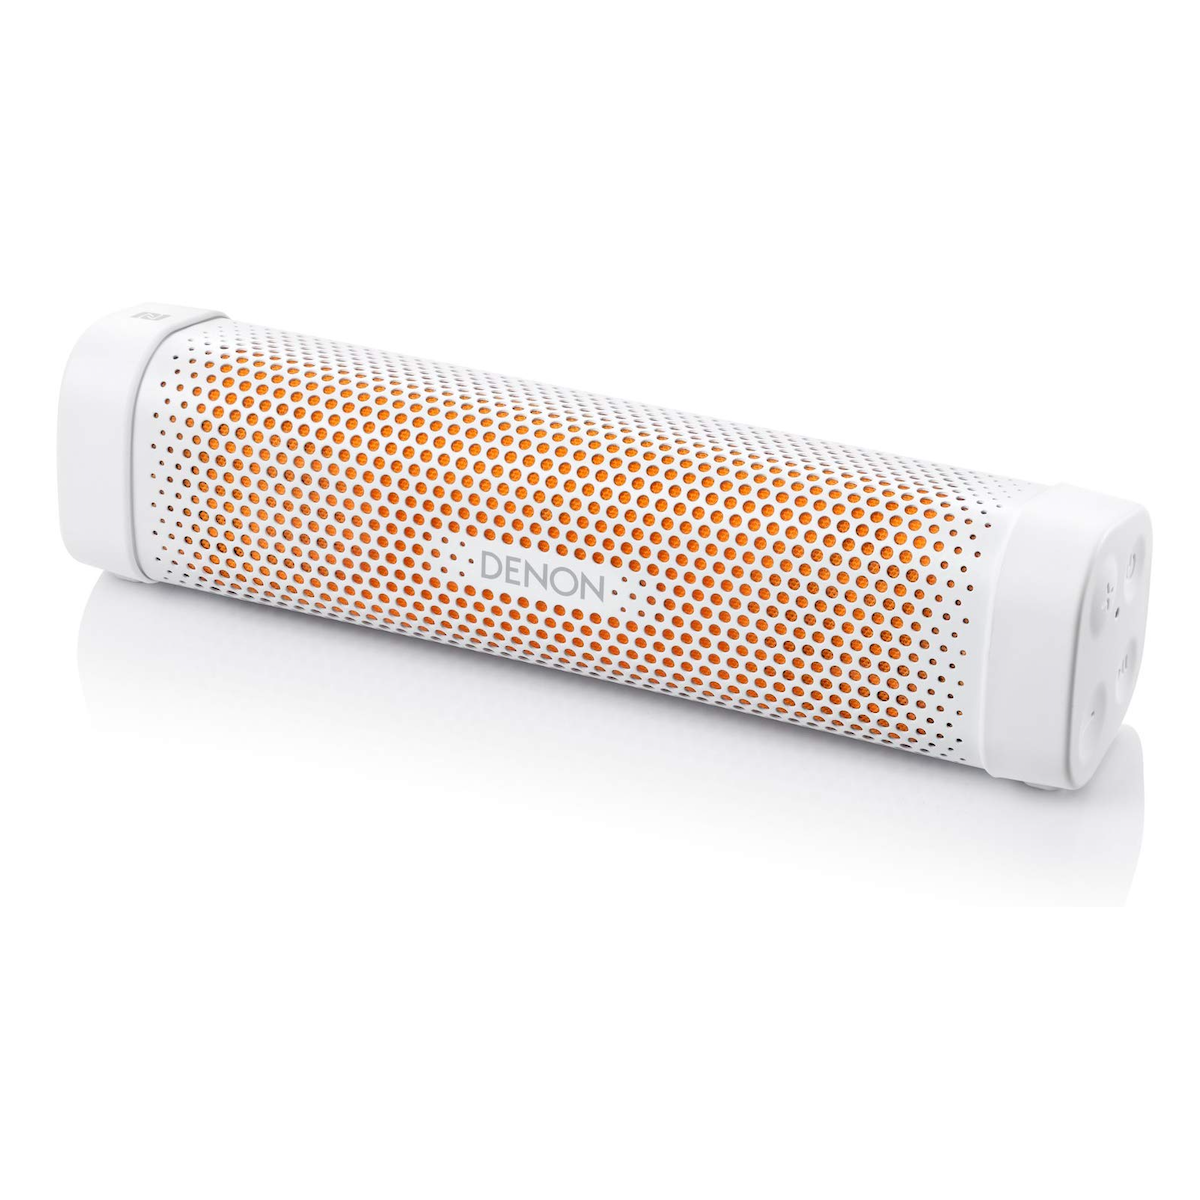 Denon Envaya Mini - DSB-100 - Portable Bluetooth Speaker, Denon, Portable Bluetooth Speaker - AVStore.in